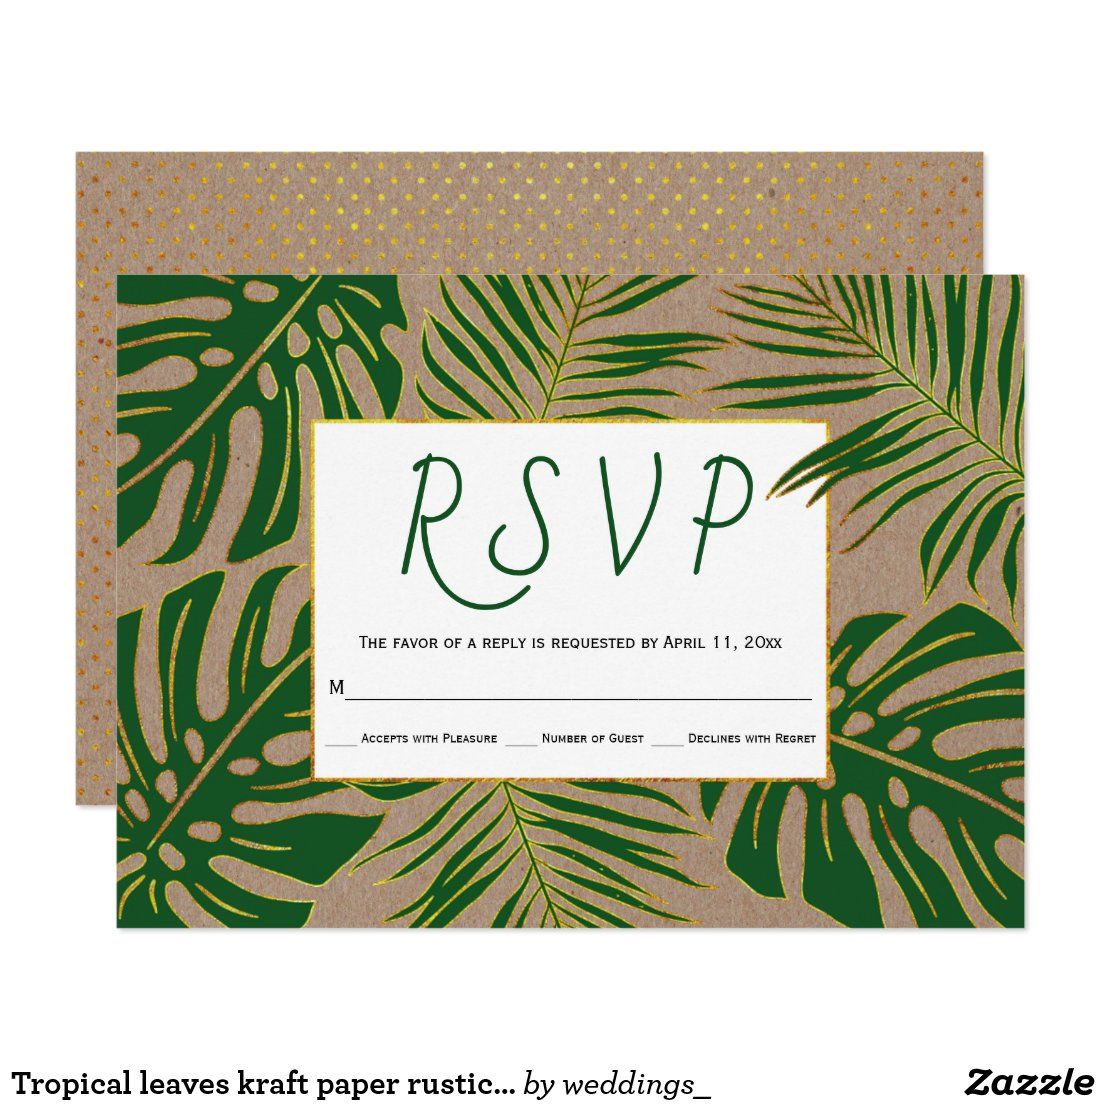 Tropical leaves kraft paper rustic wedding RSVP